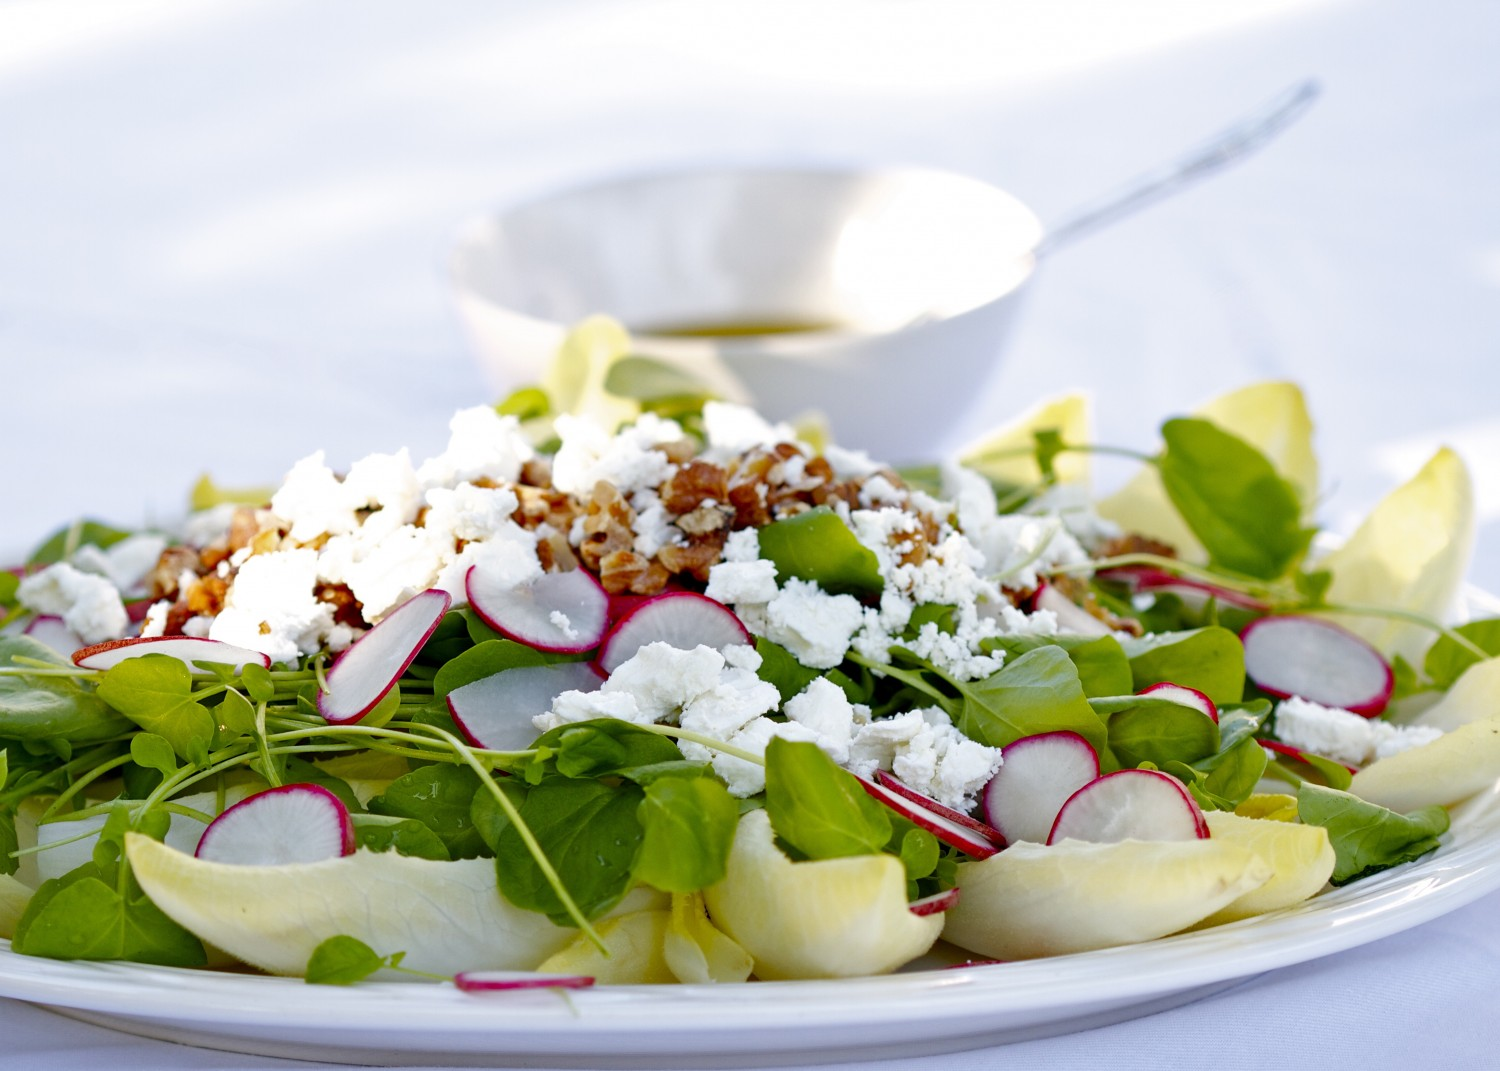 Endive, Watercress and Radish Salad With Walnuts and Goat Cheese